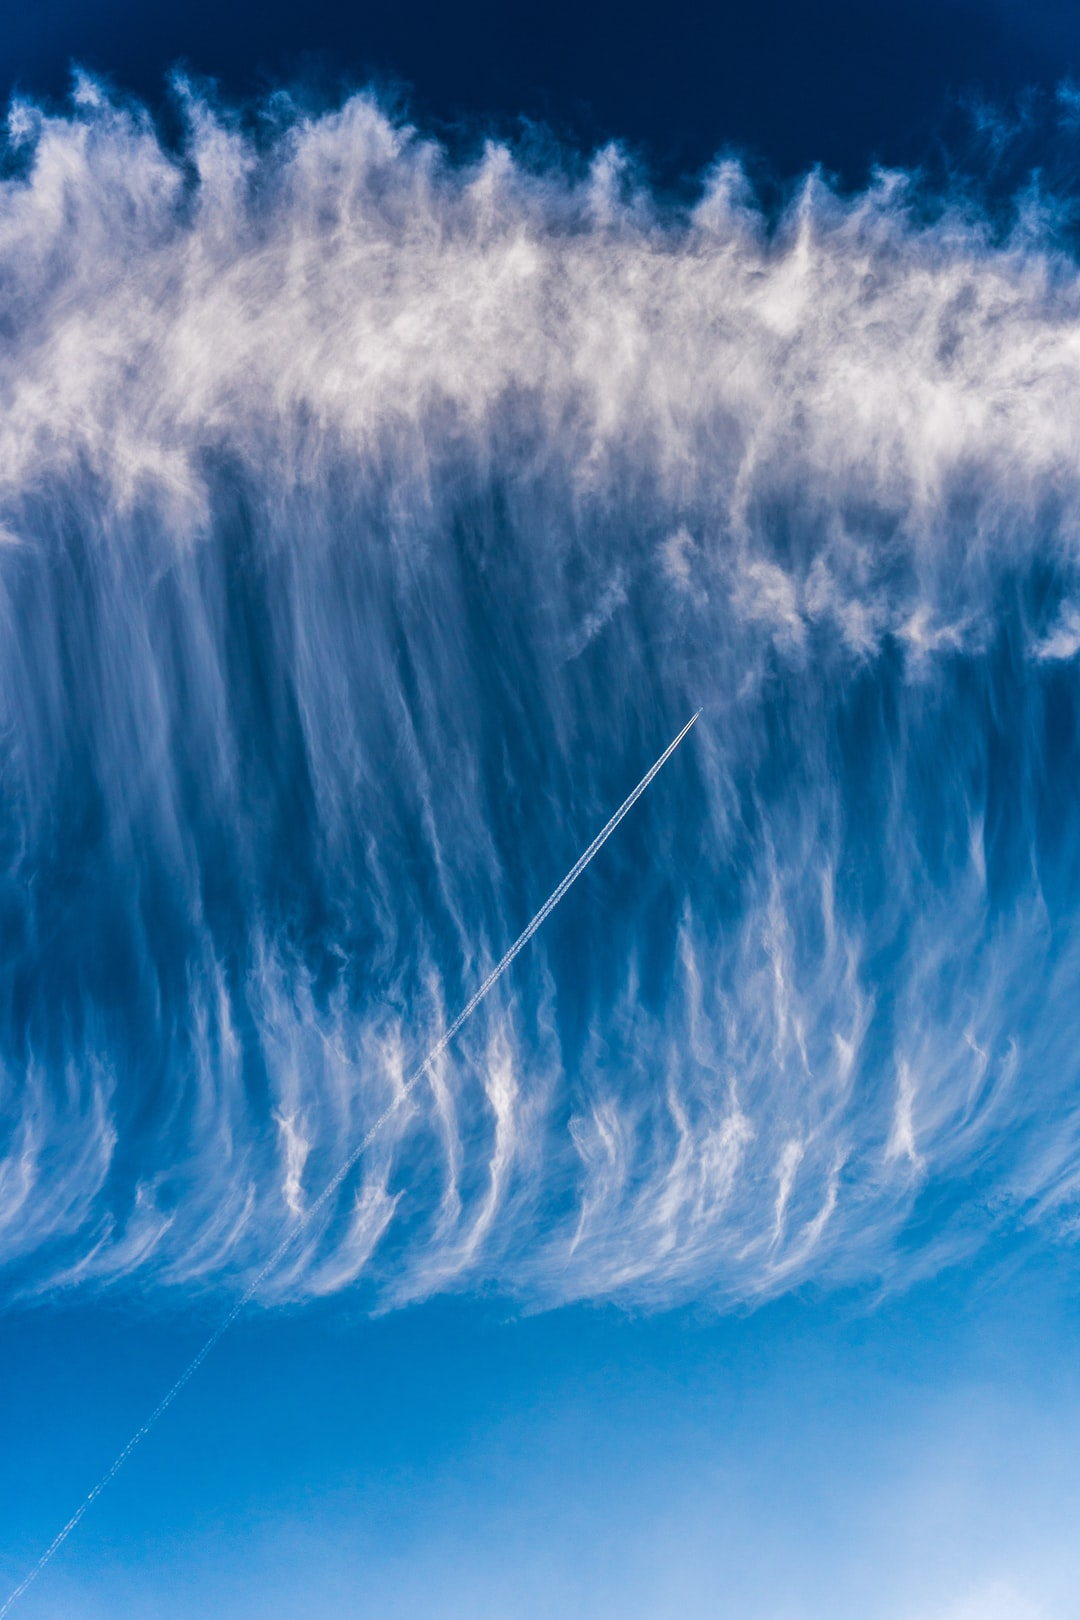 Sky surfing - Airplane skytrail (contrail) in a wave of clouds